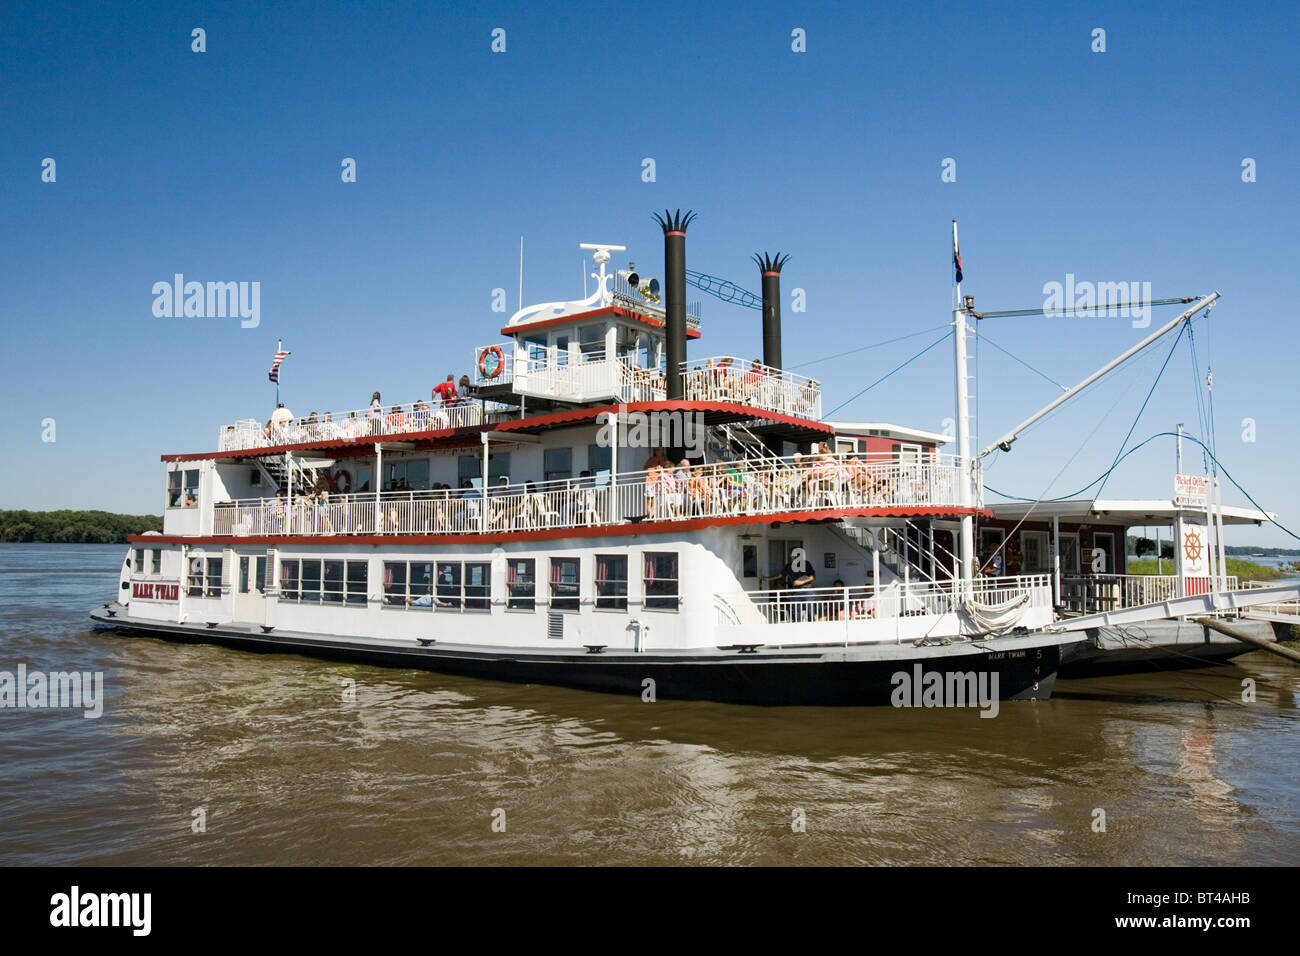 The river boat 'Mark Twain', named for Hannibal, Missouri's most famous son, plies the waters of the - Stock Image